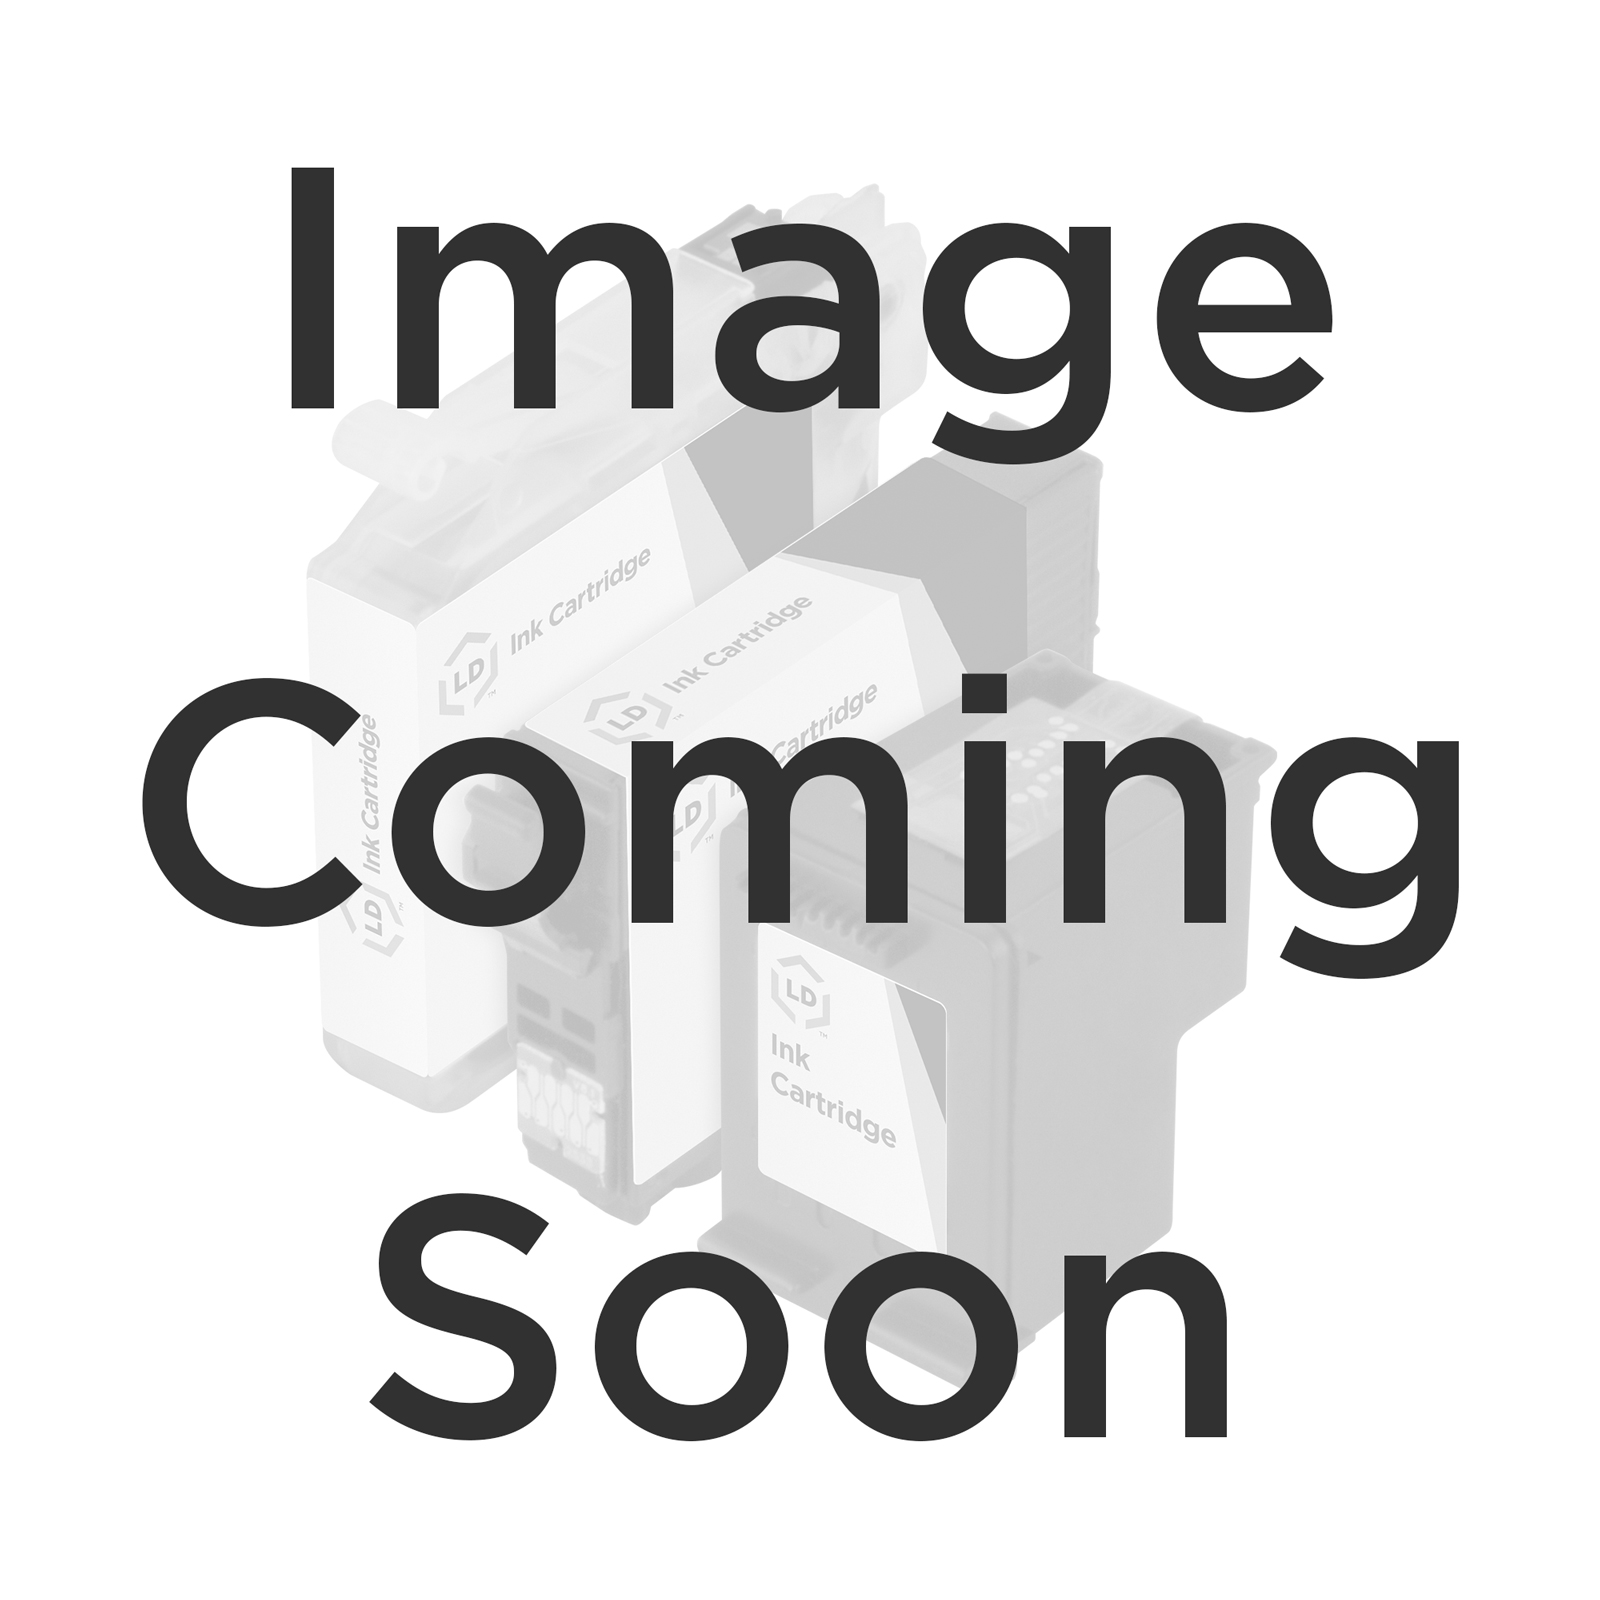 3M Command Spring Clip with Adhesive Strips - 1 per pack